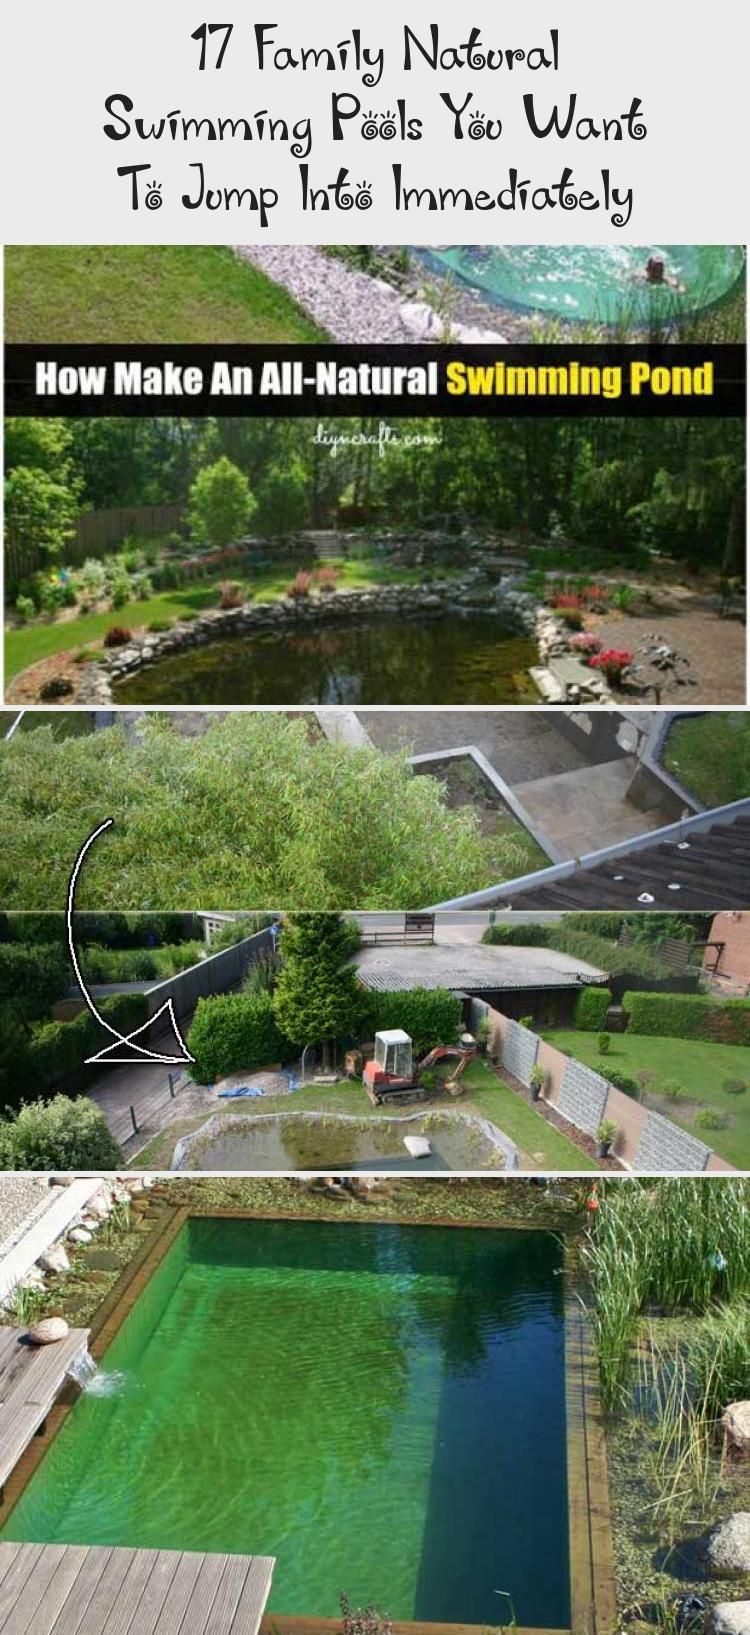 Photo of 17 Family Natural Swimming Pools You Want To Jump Into Immediately – DIY